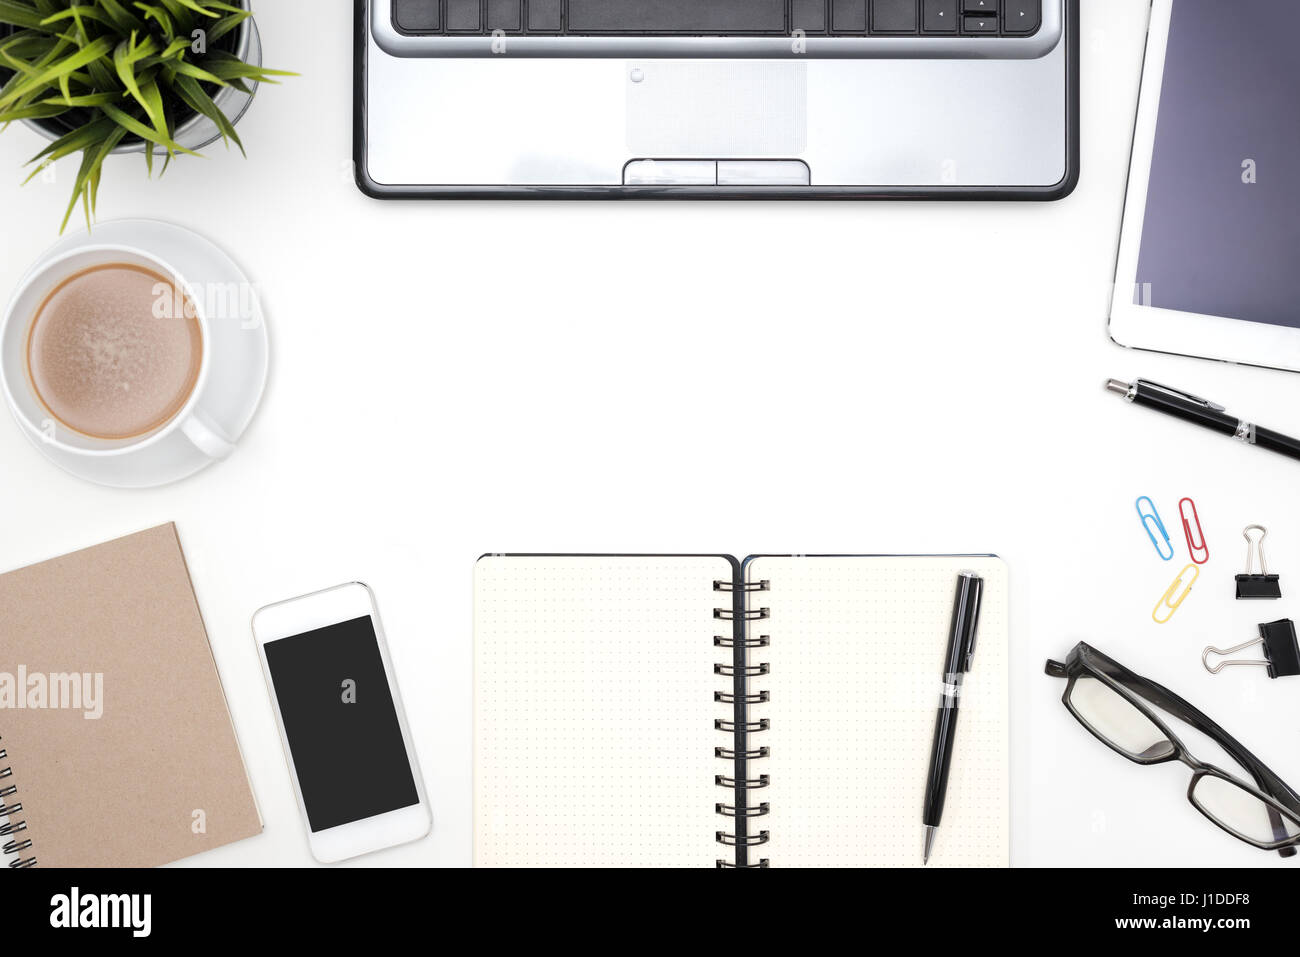 Frame Of White Office Desk Table Background With Computer, Supplies,  Notebook, Pen,